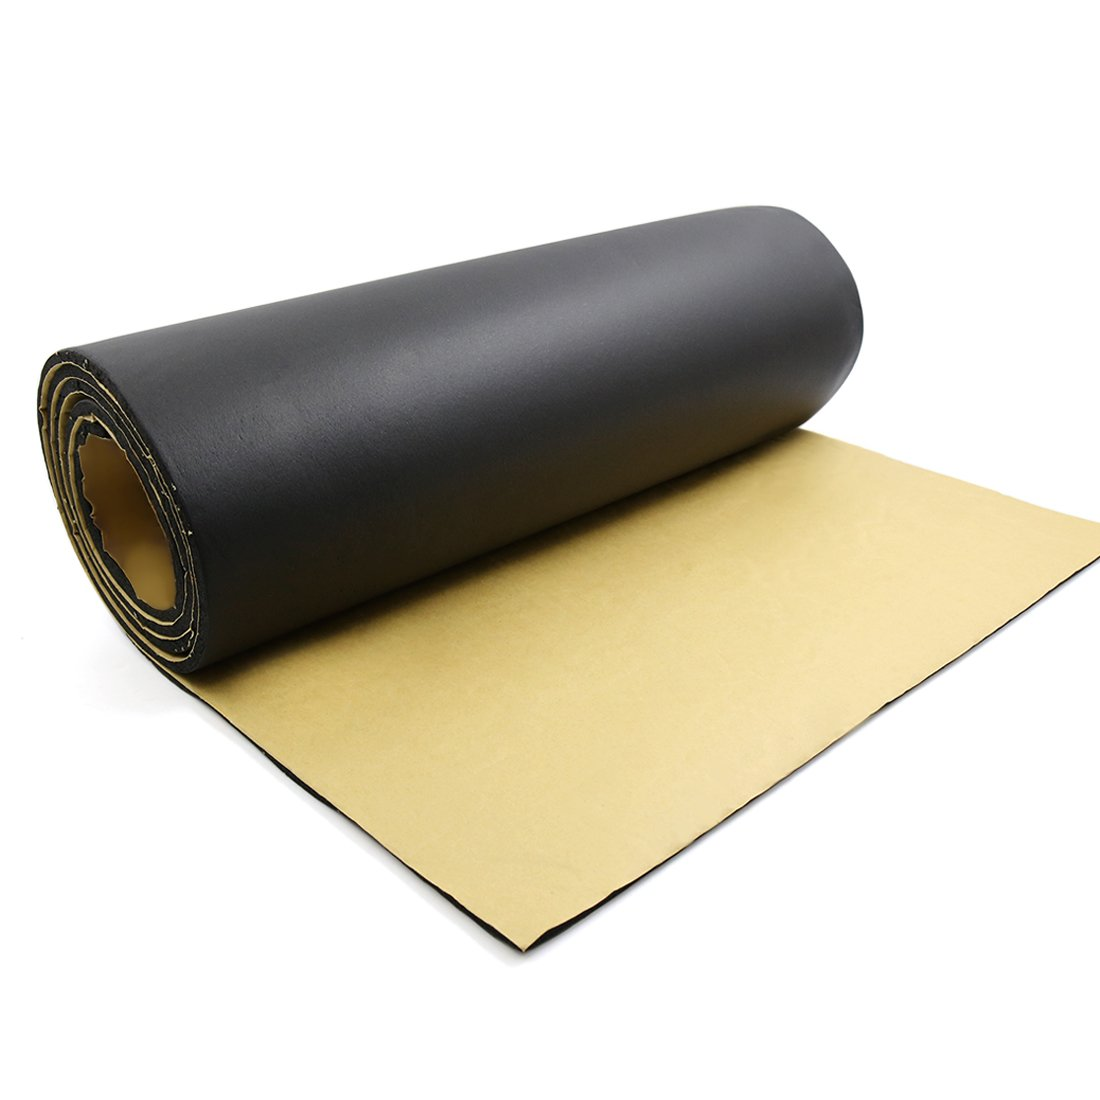 uxcell 315mil 8mm 32.29sqft Car Floor Tailgate Sound Insulation Deadener Mat 118'' x 40''